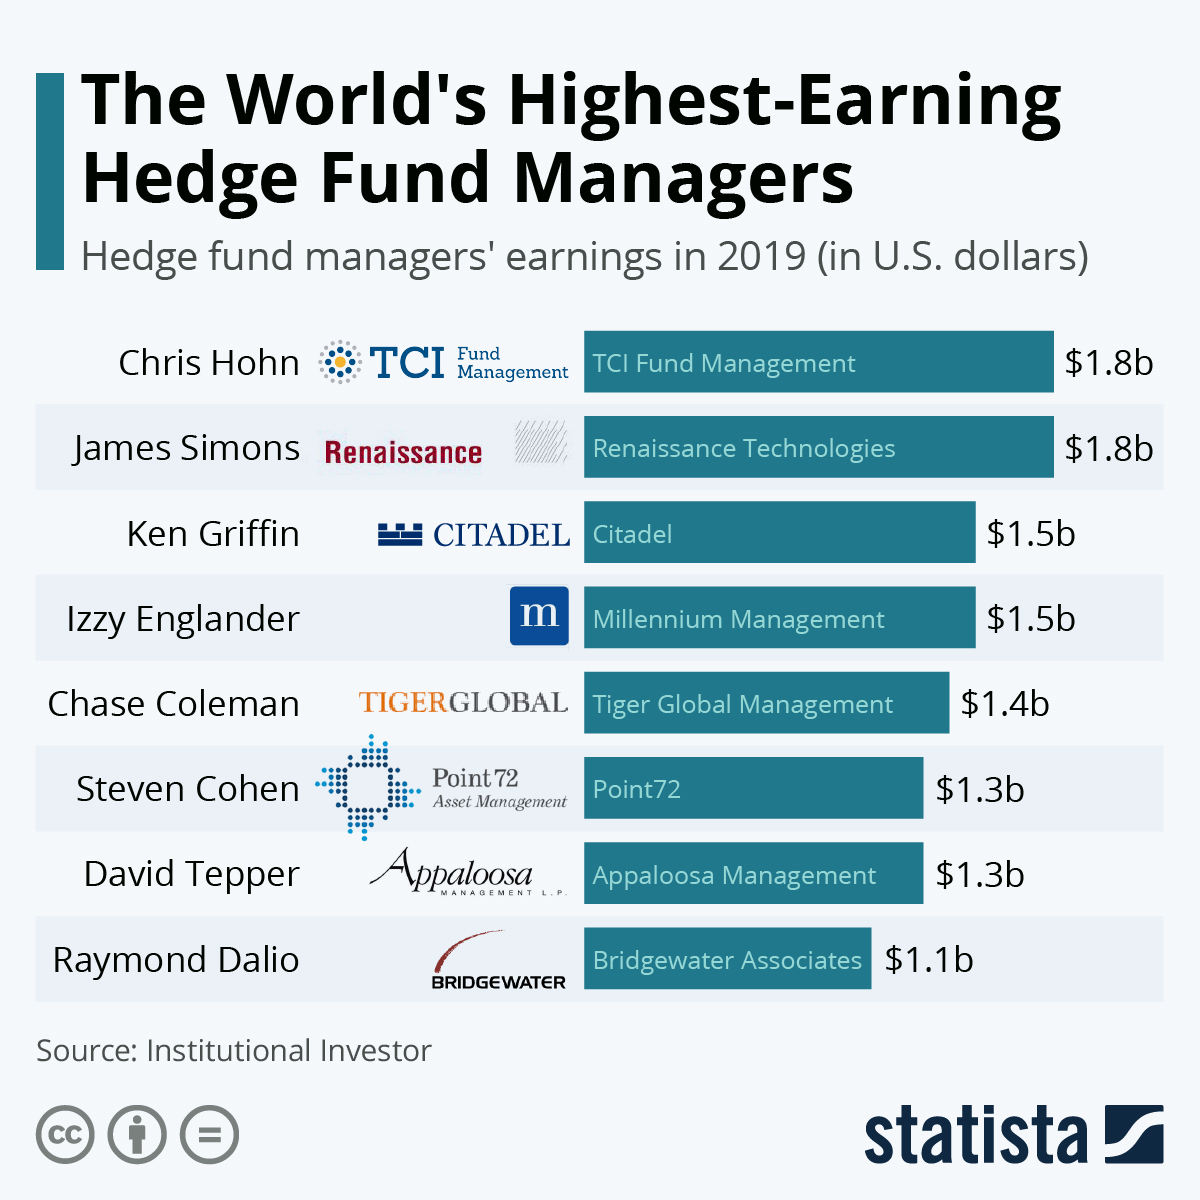 highest-earning-hedge-fund-managers-4826